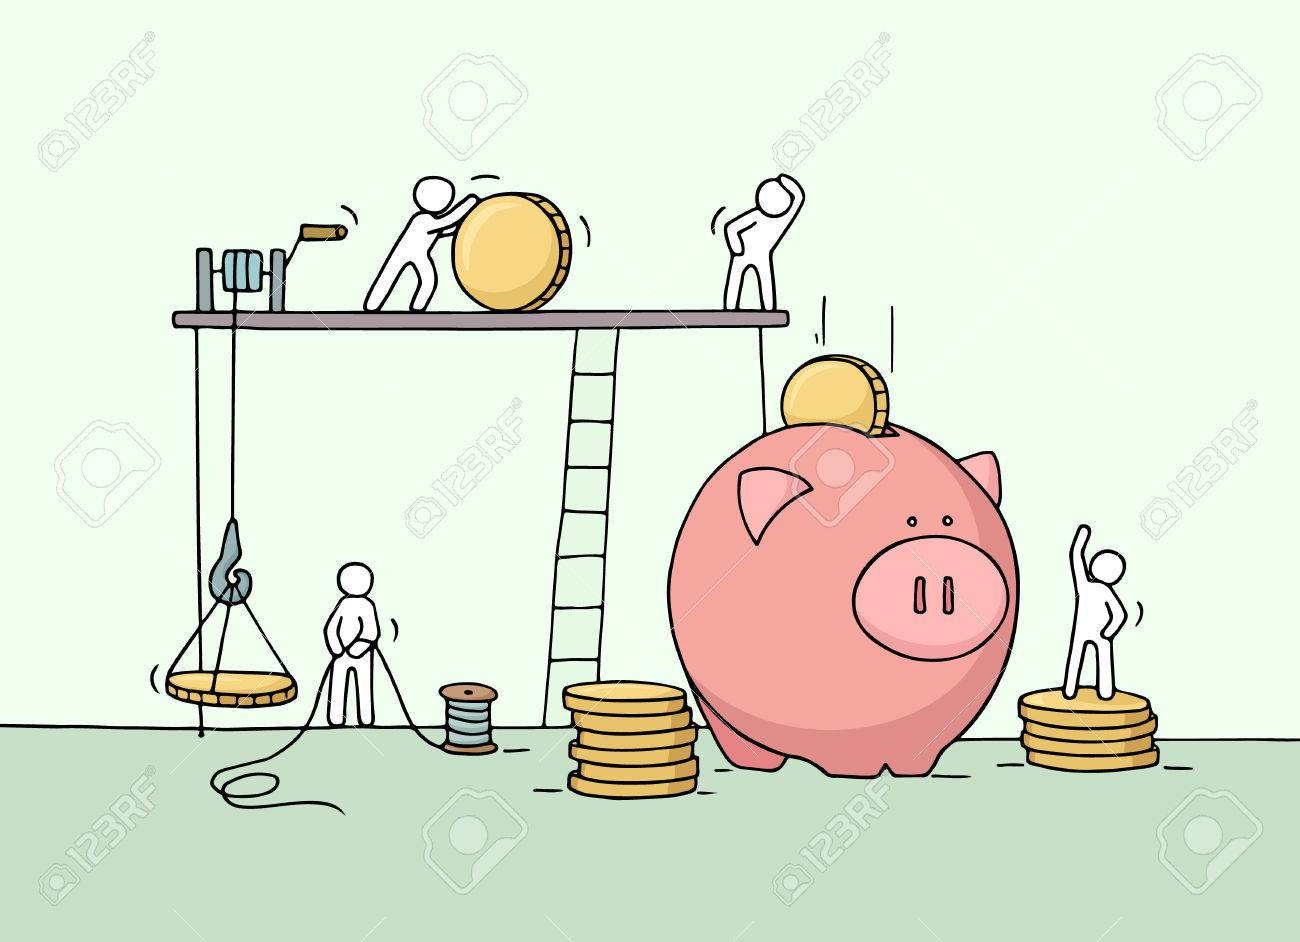 Sketch Of Save Coins In Moneybox With Working Little People